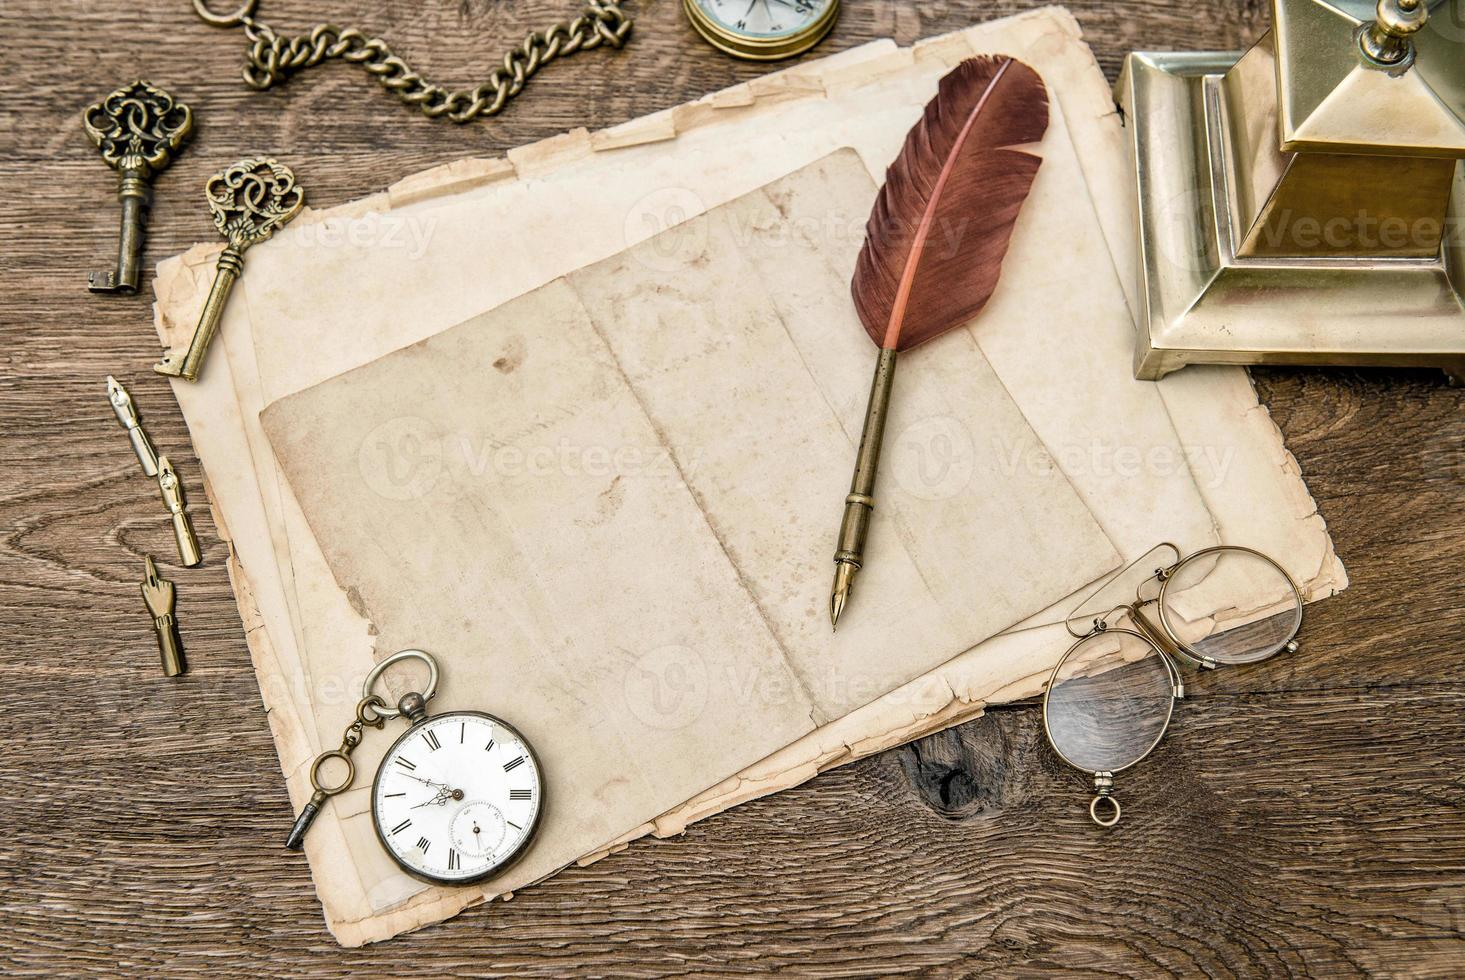 Antique office supplies and accessories, used paper, feather pen photo